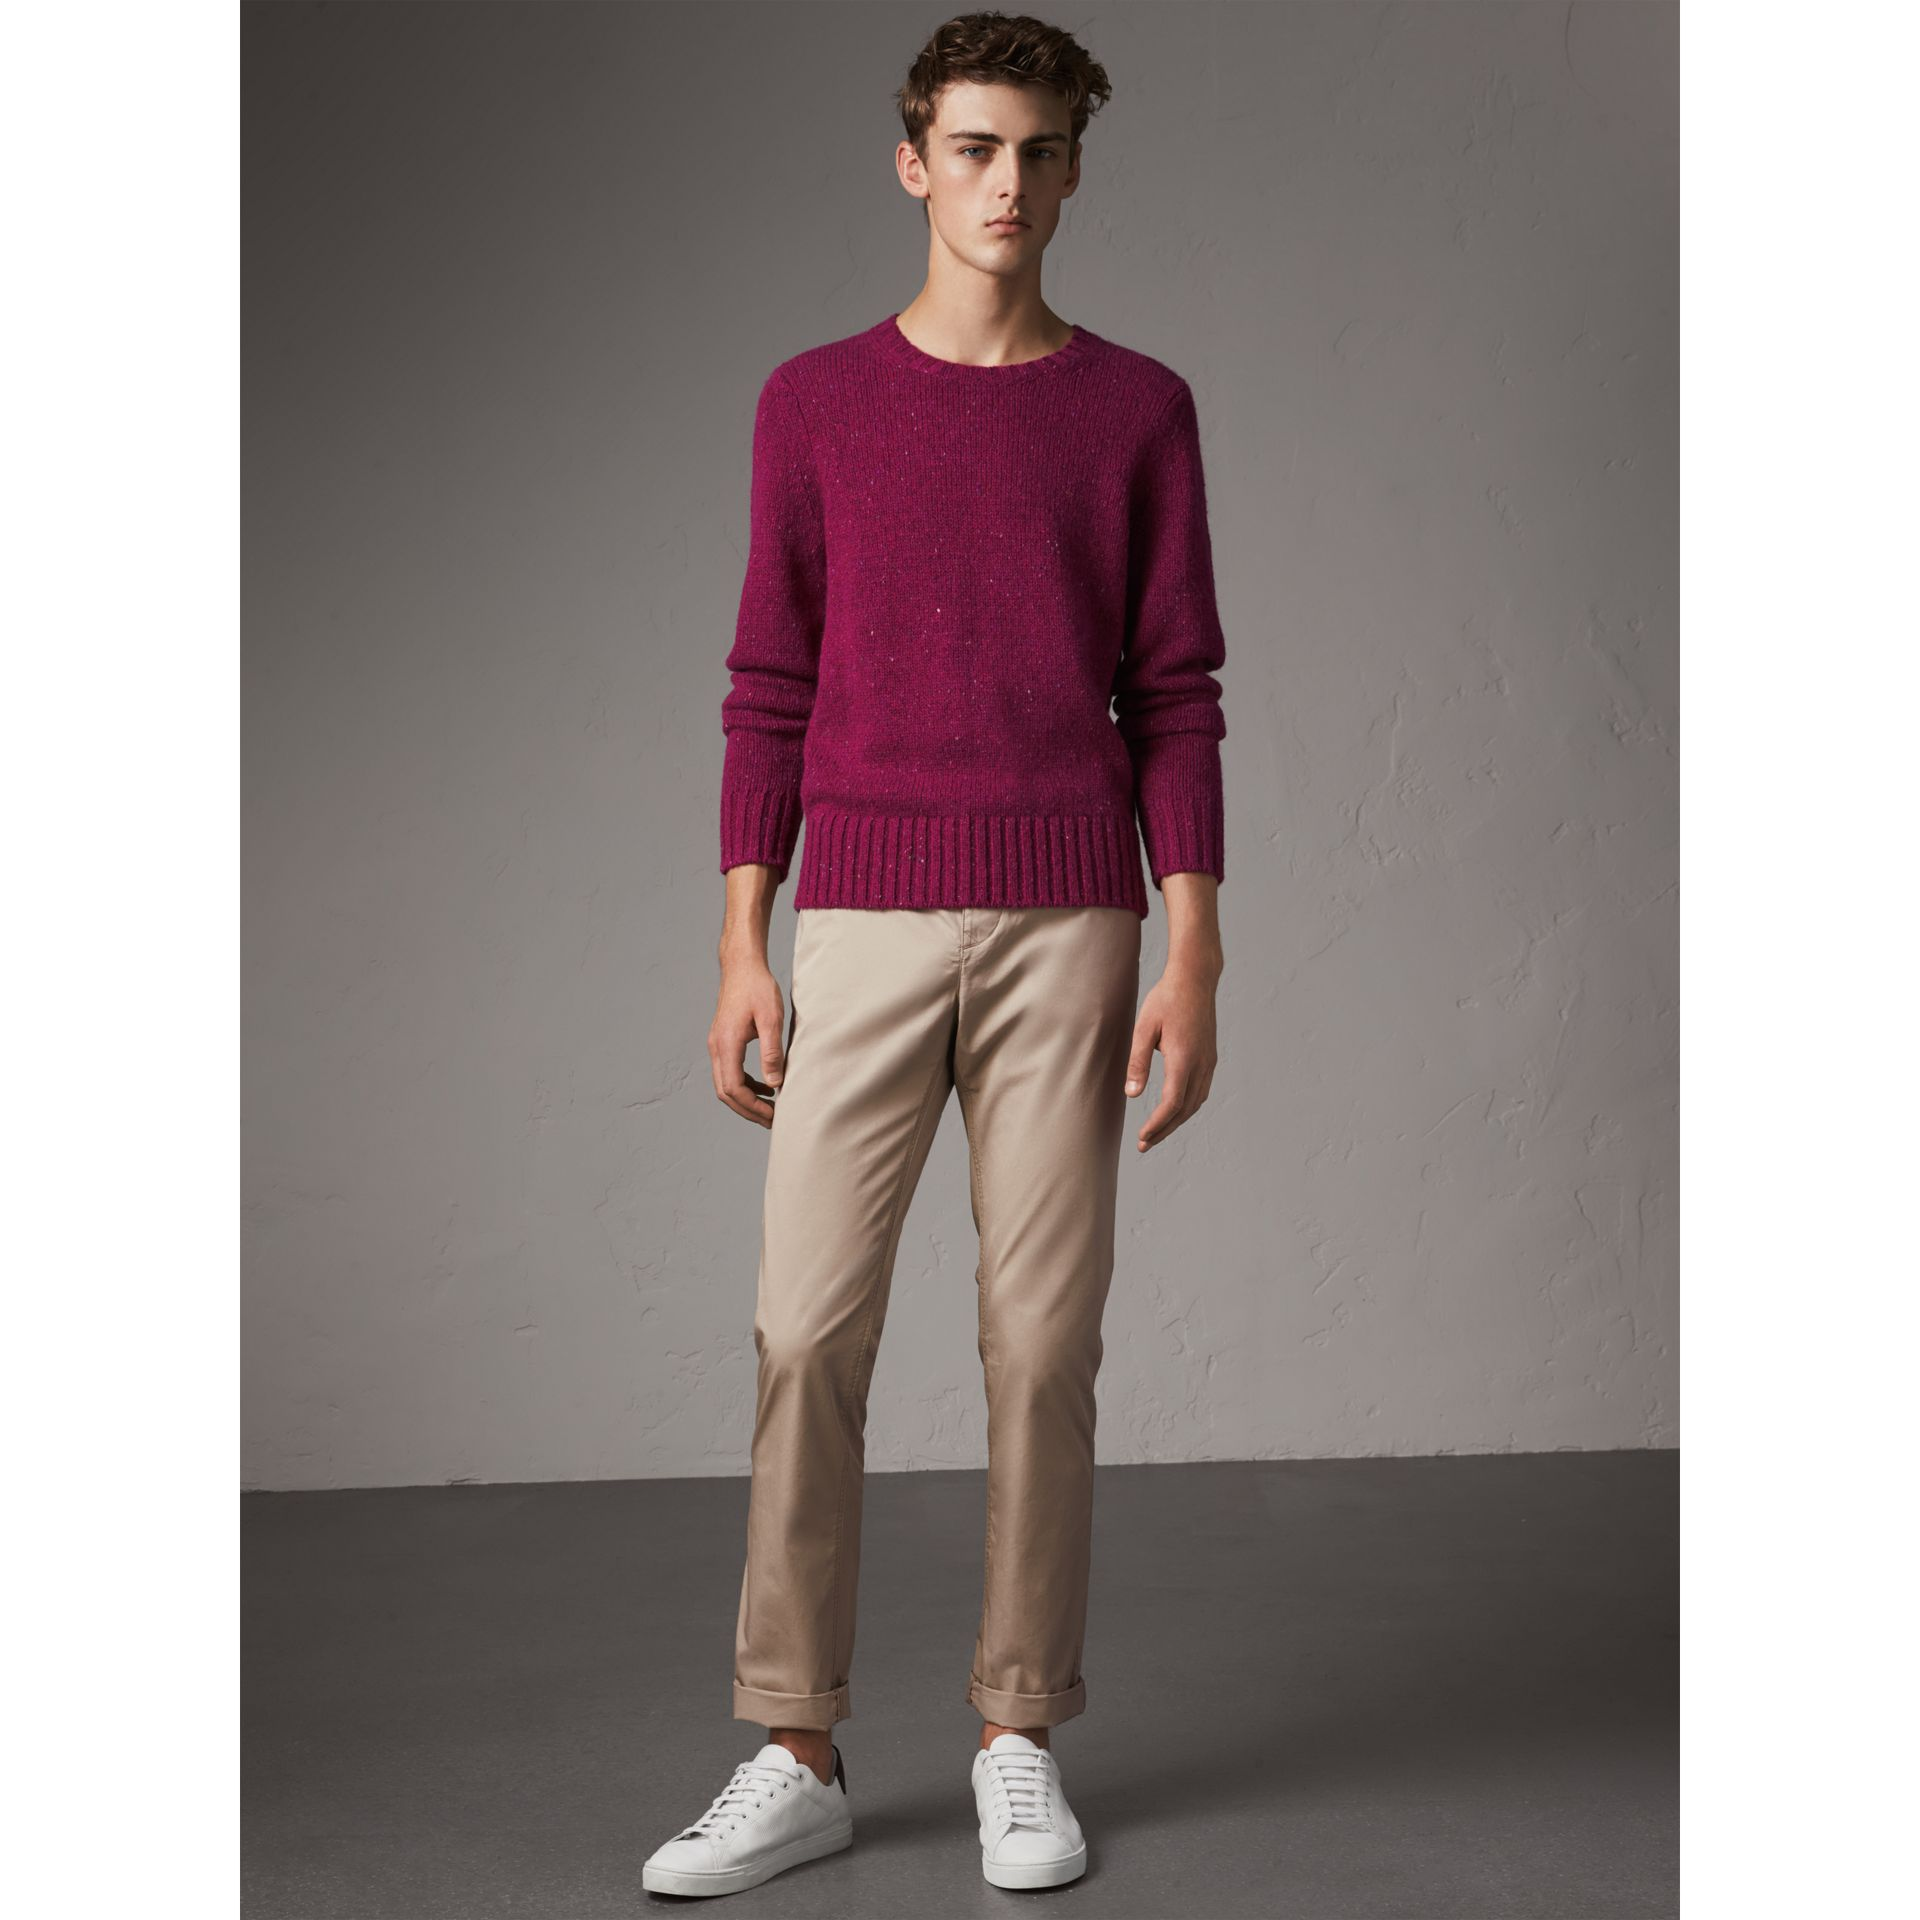 Pantalon chino de coupe droite en coton (Taupe) - Homme | Burberry - photo de la galerie 0